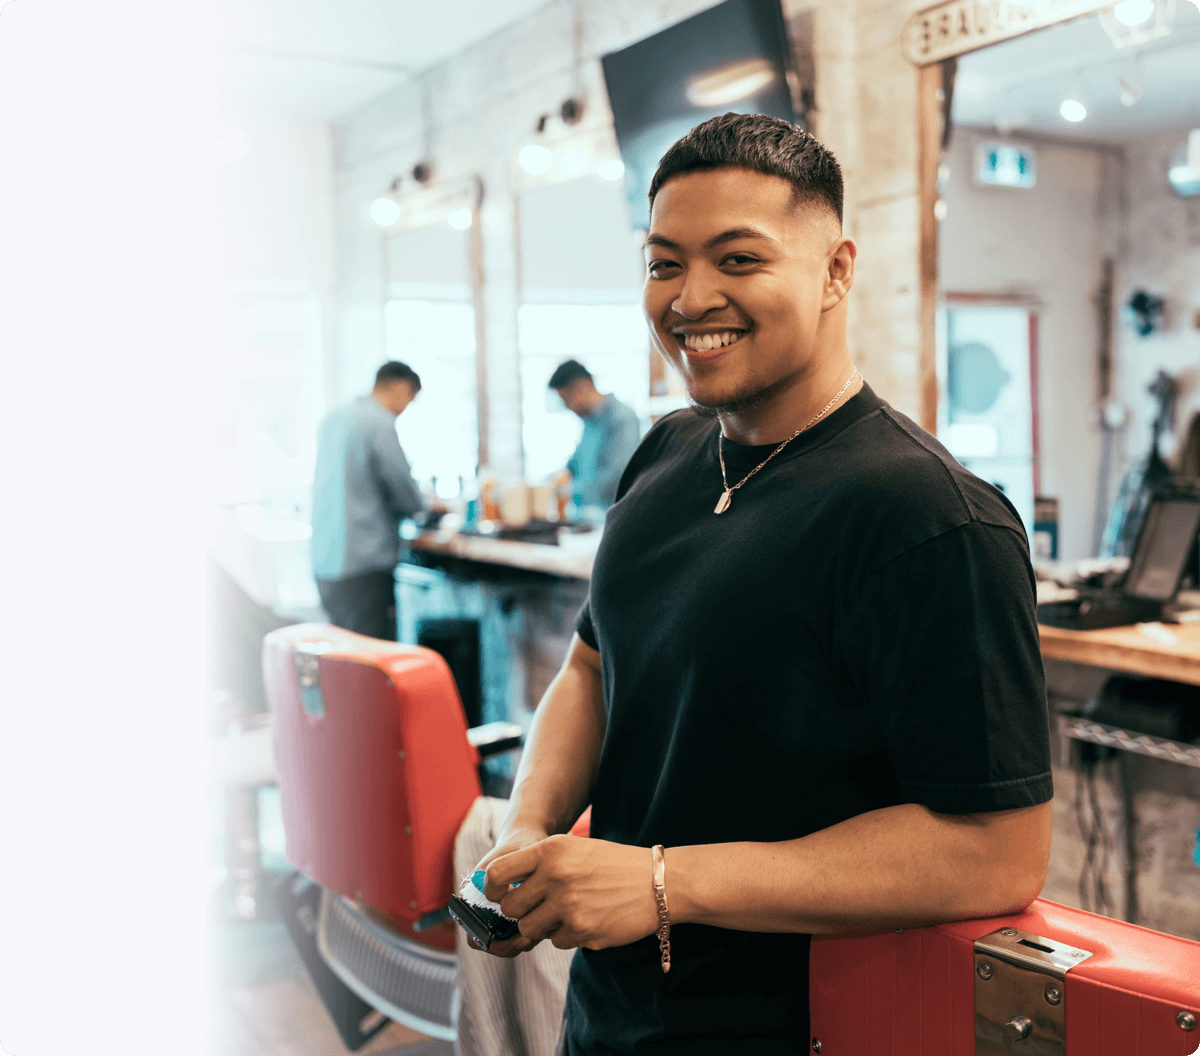 Setmore barber client standing and smiling at the camera